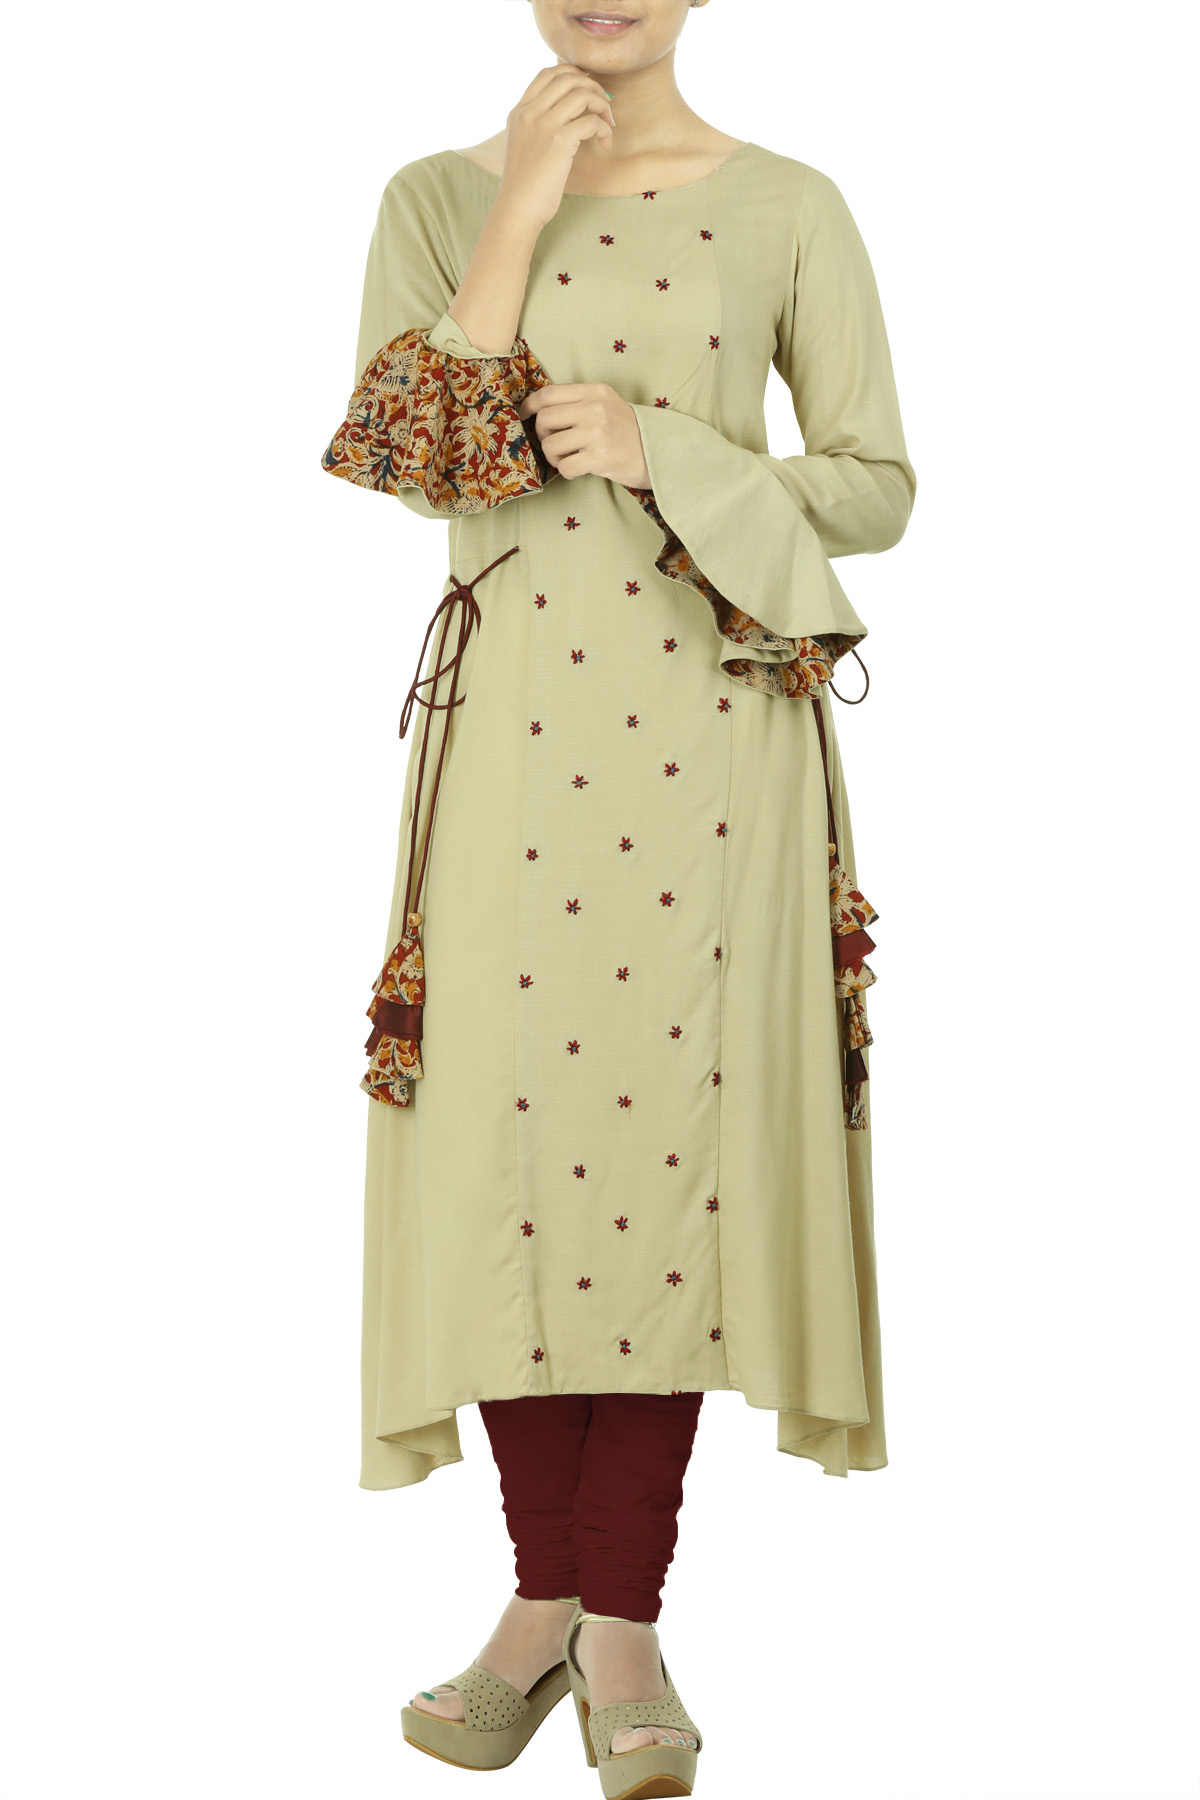 Beige rayon-flared tunic with thread floral embroidery